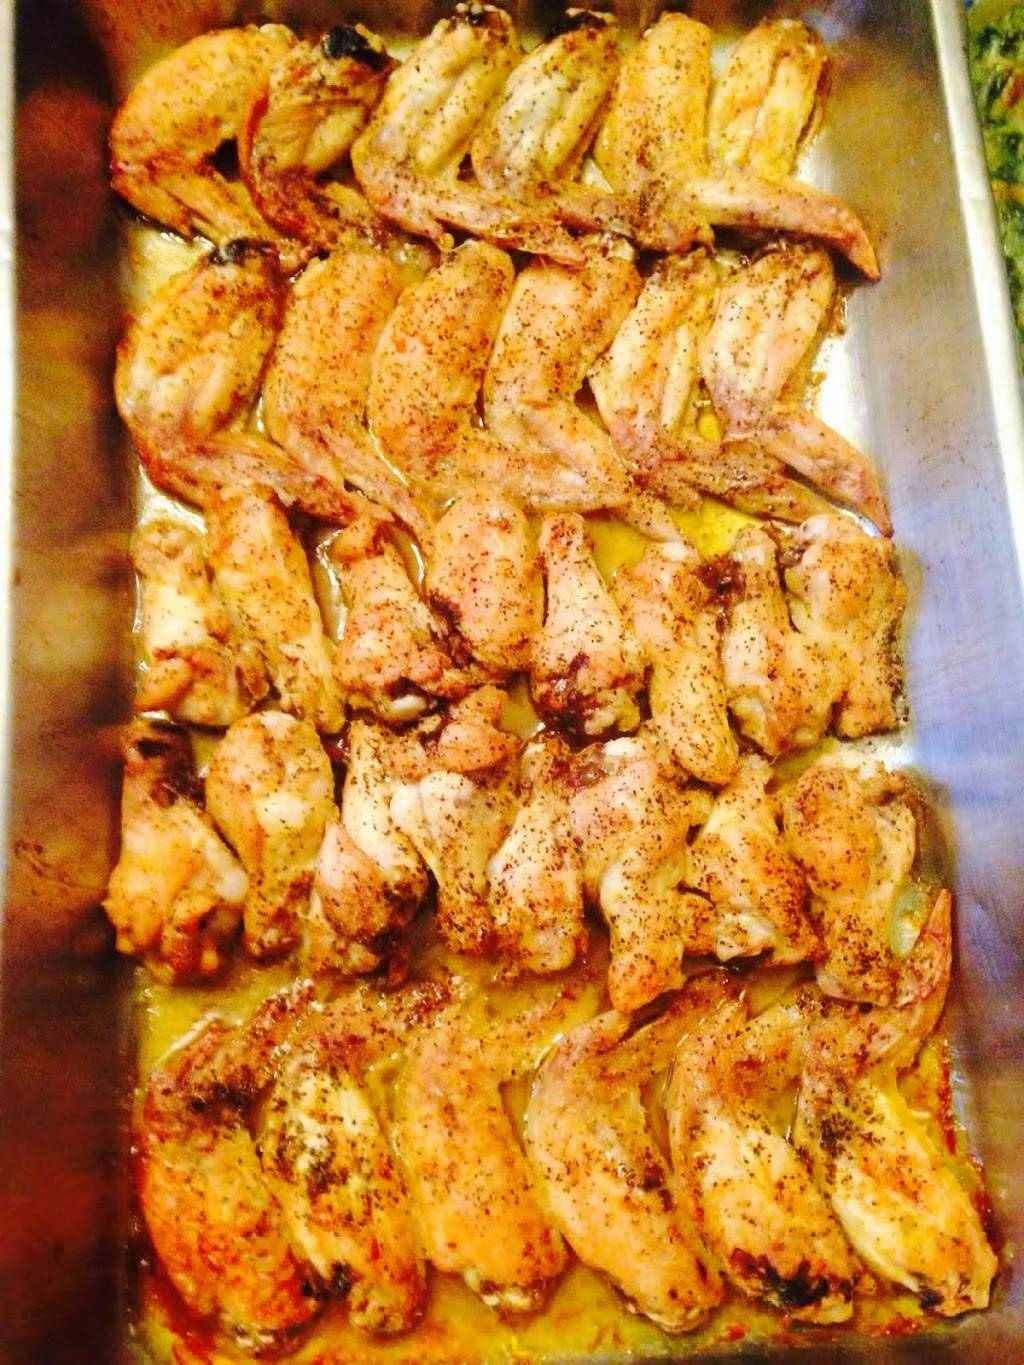 Zora Christina Catering | restaurant | 2003 W Airline Hwy, Laplace, LA 70068, USA | 9853593673 OR +1 985-359-3673